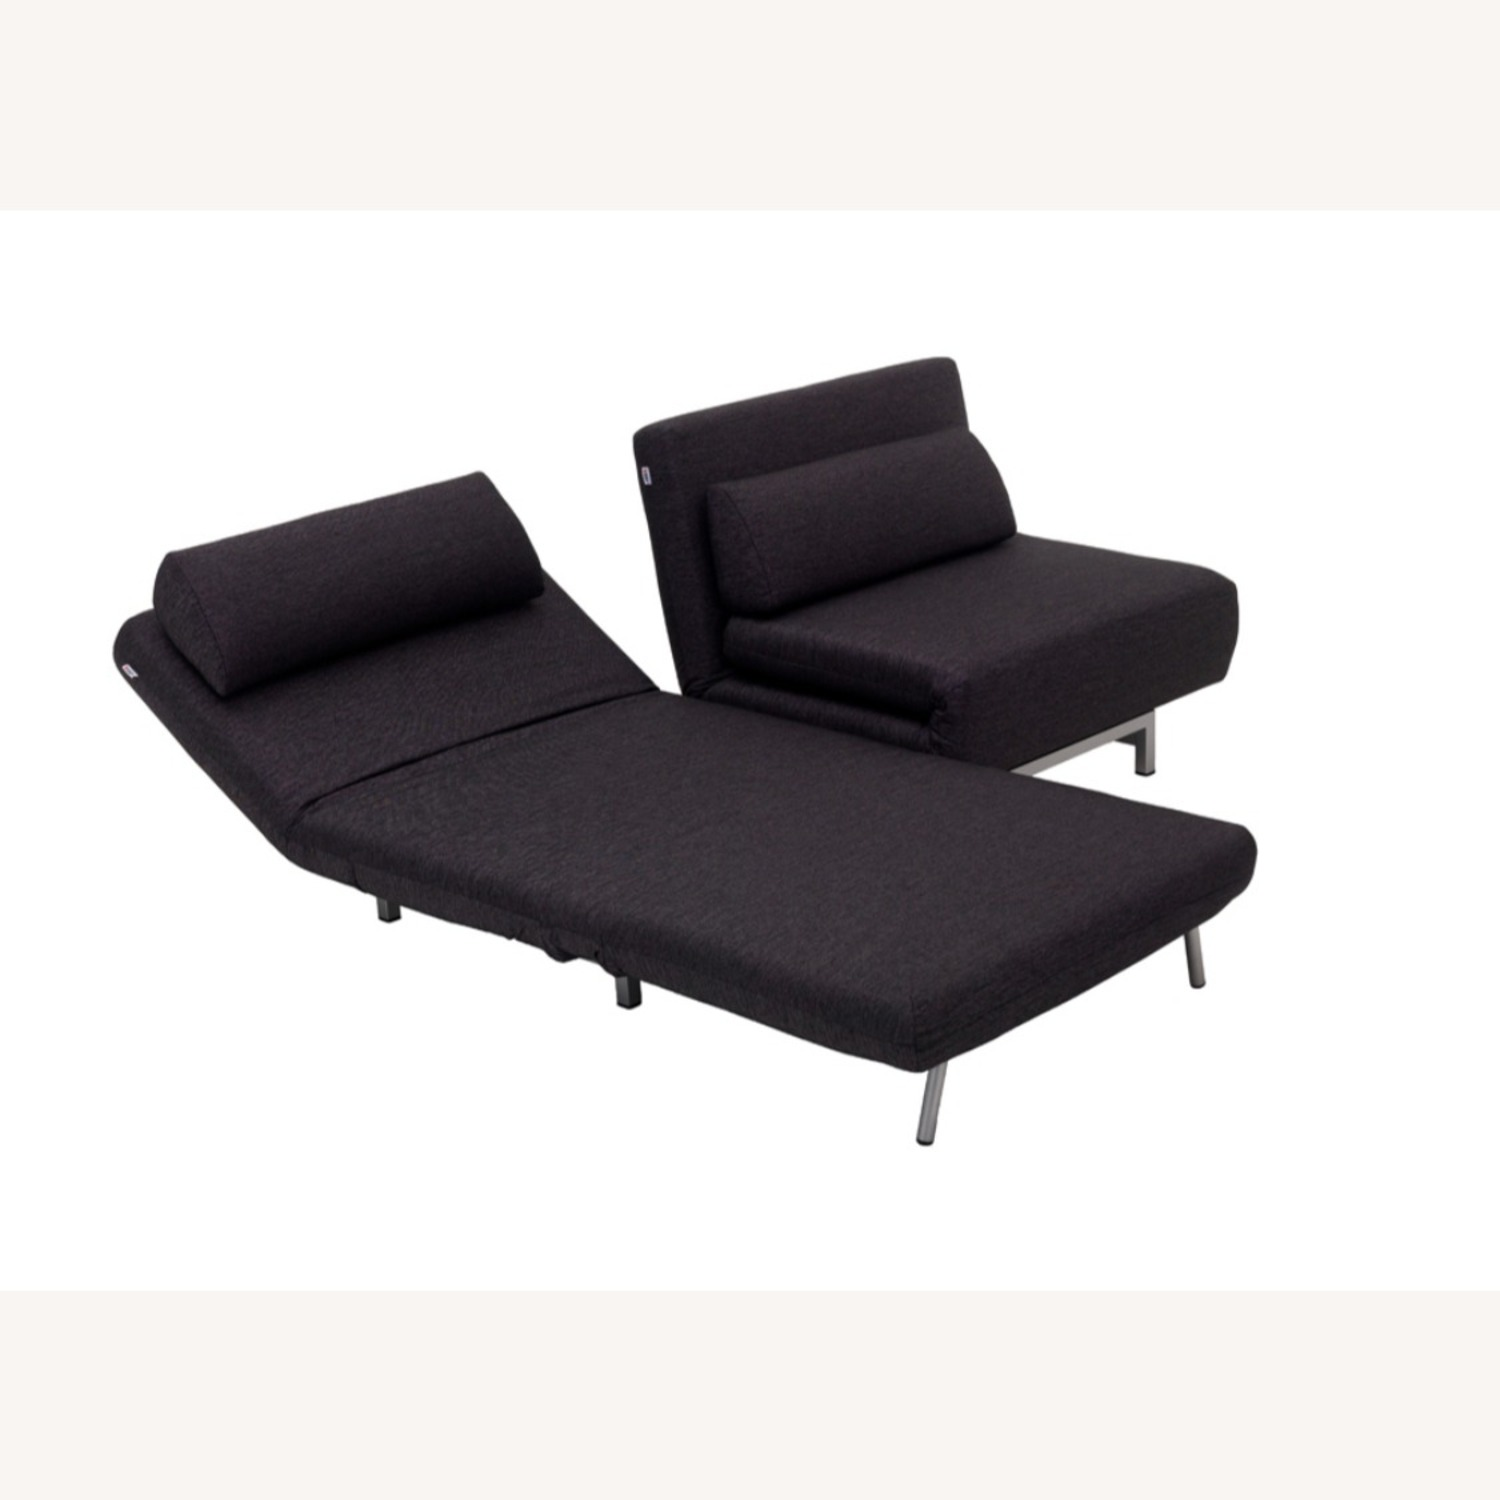 J&M Furniture Multi-Way Sleeper Sofa - image-6